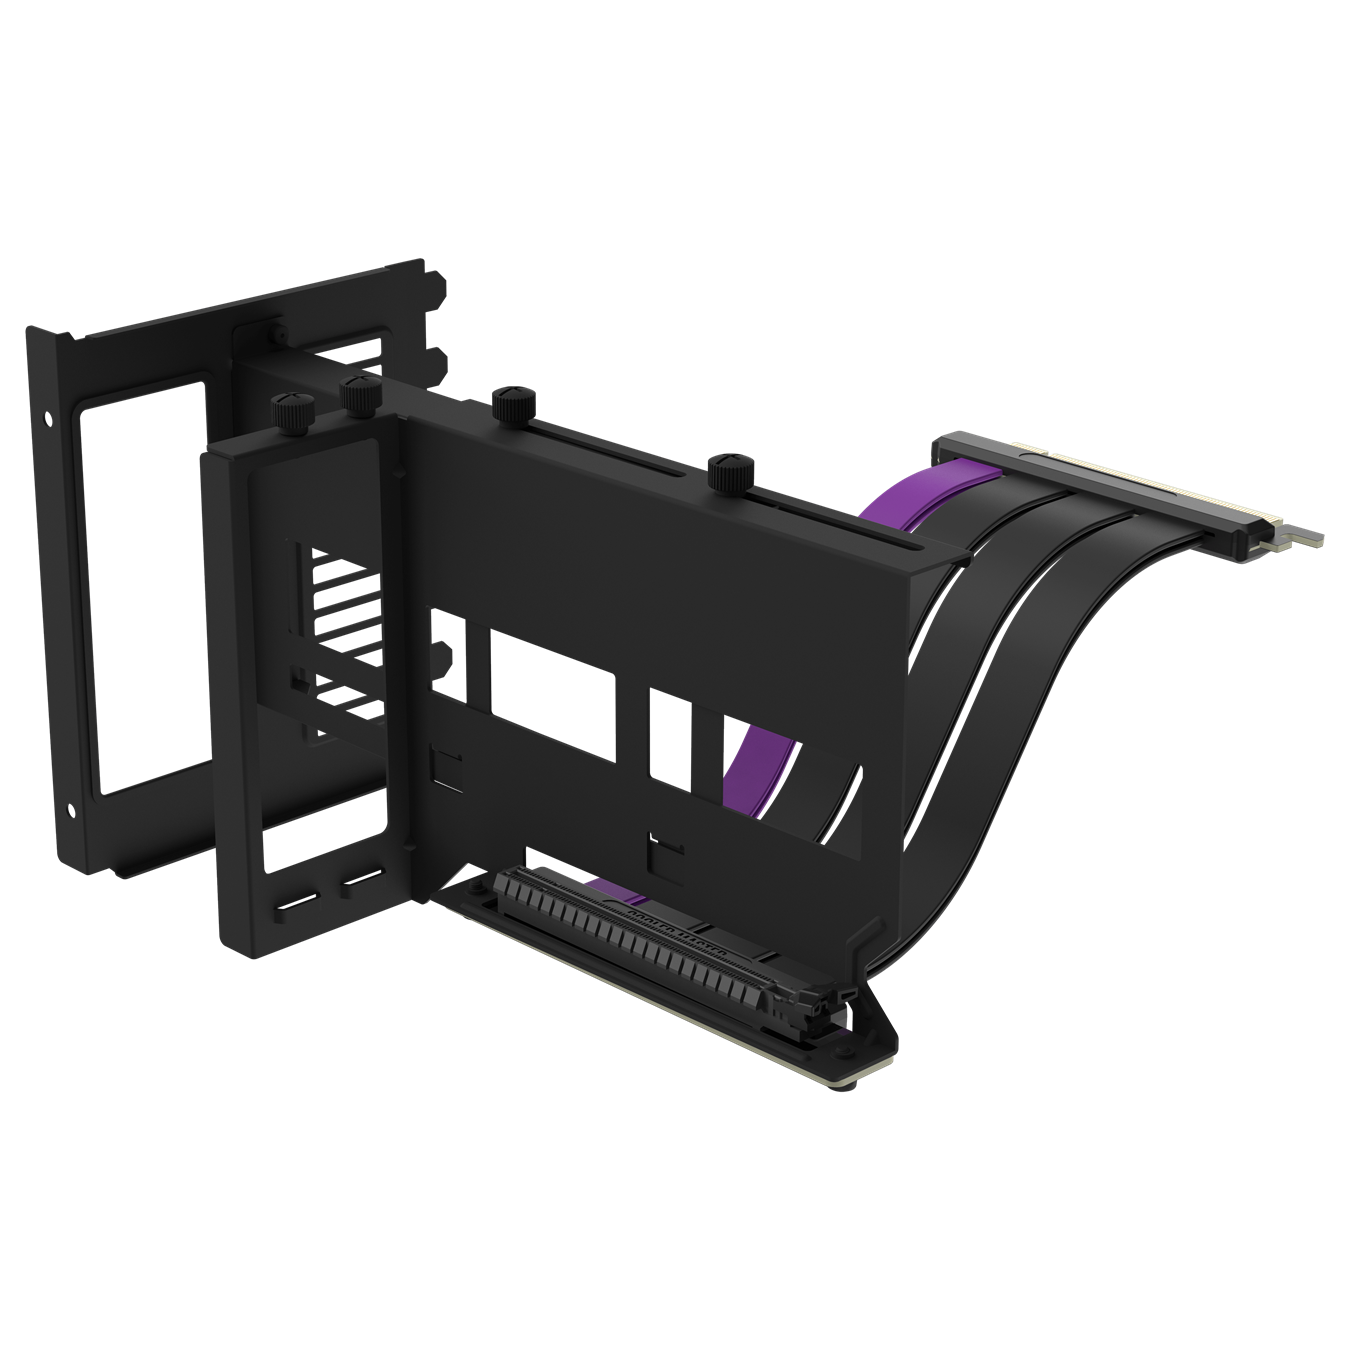 Black Universal Vertical GPU Bracket with an included matte black PCIe 4.0 riser cable with purple accents, extended to accomadate various case layouts and GPU lengths.